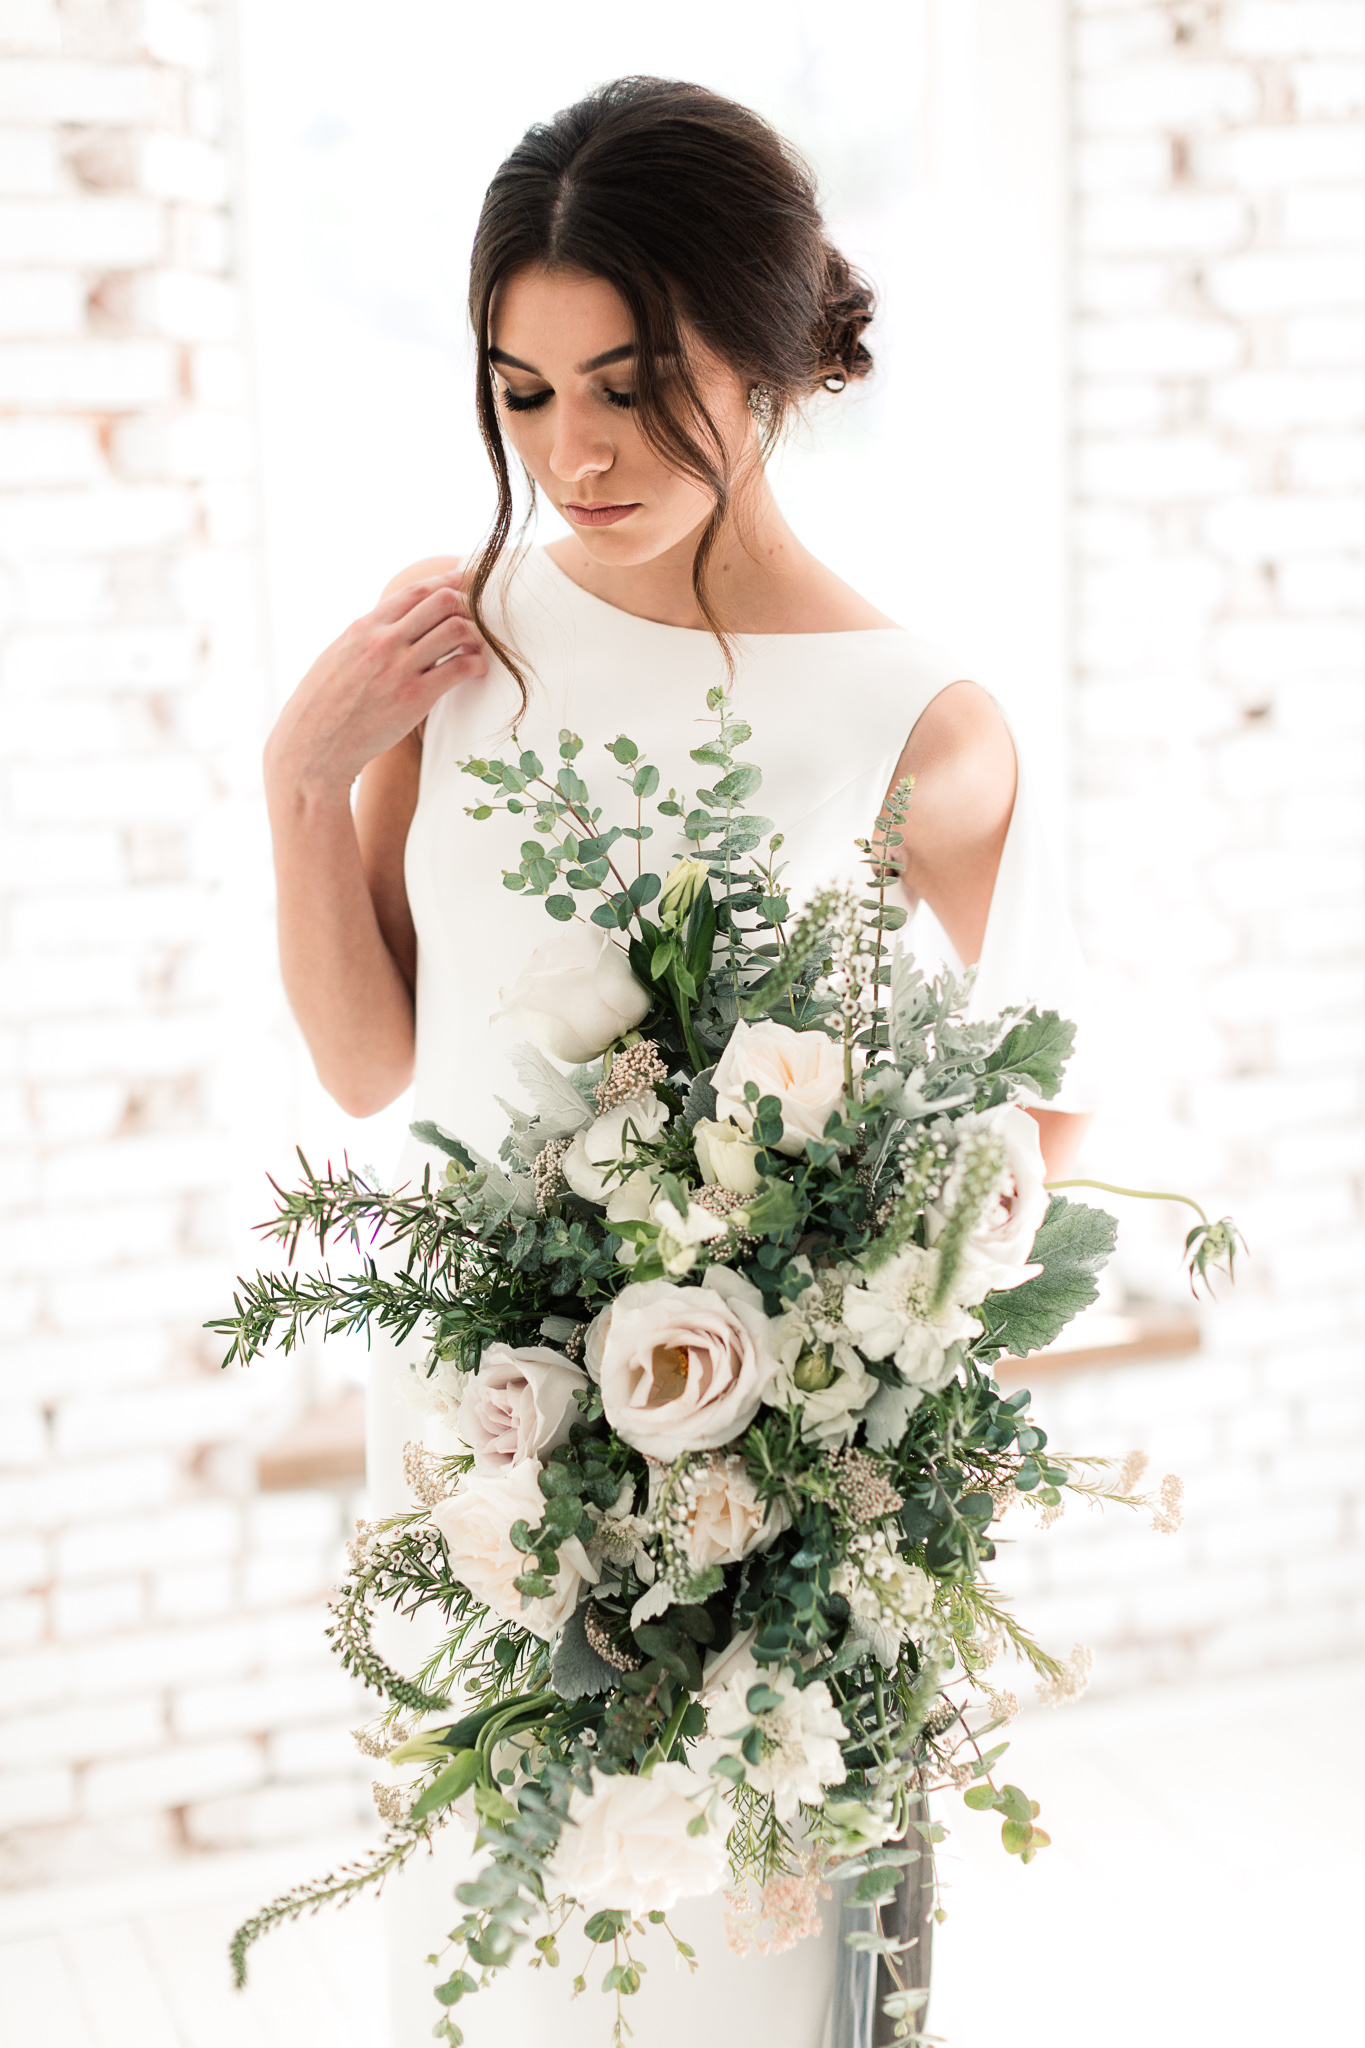 lush wedding bouquets - photo by B.Matthews Creative https://ruffledblog.com/organic-italian-inspired-wedding-ideas